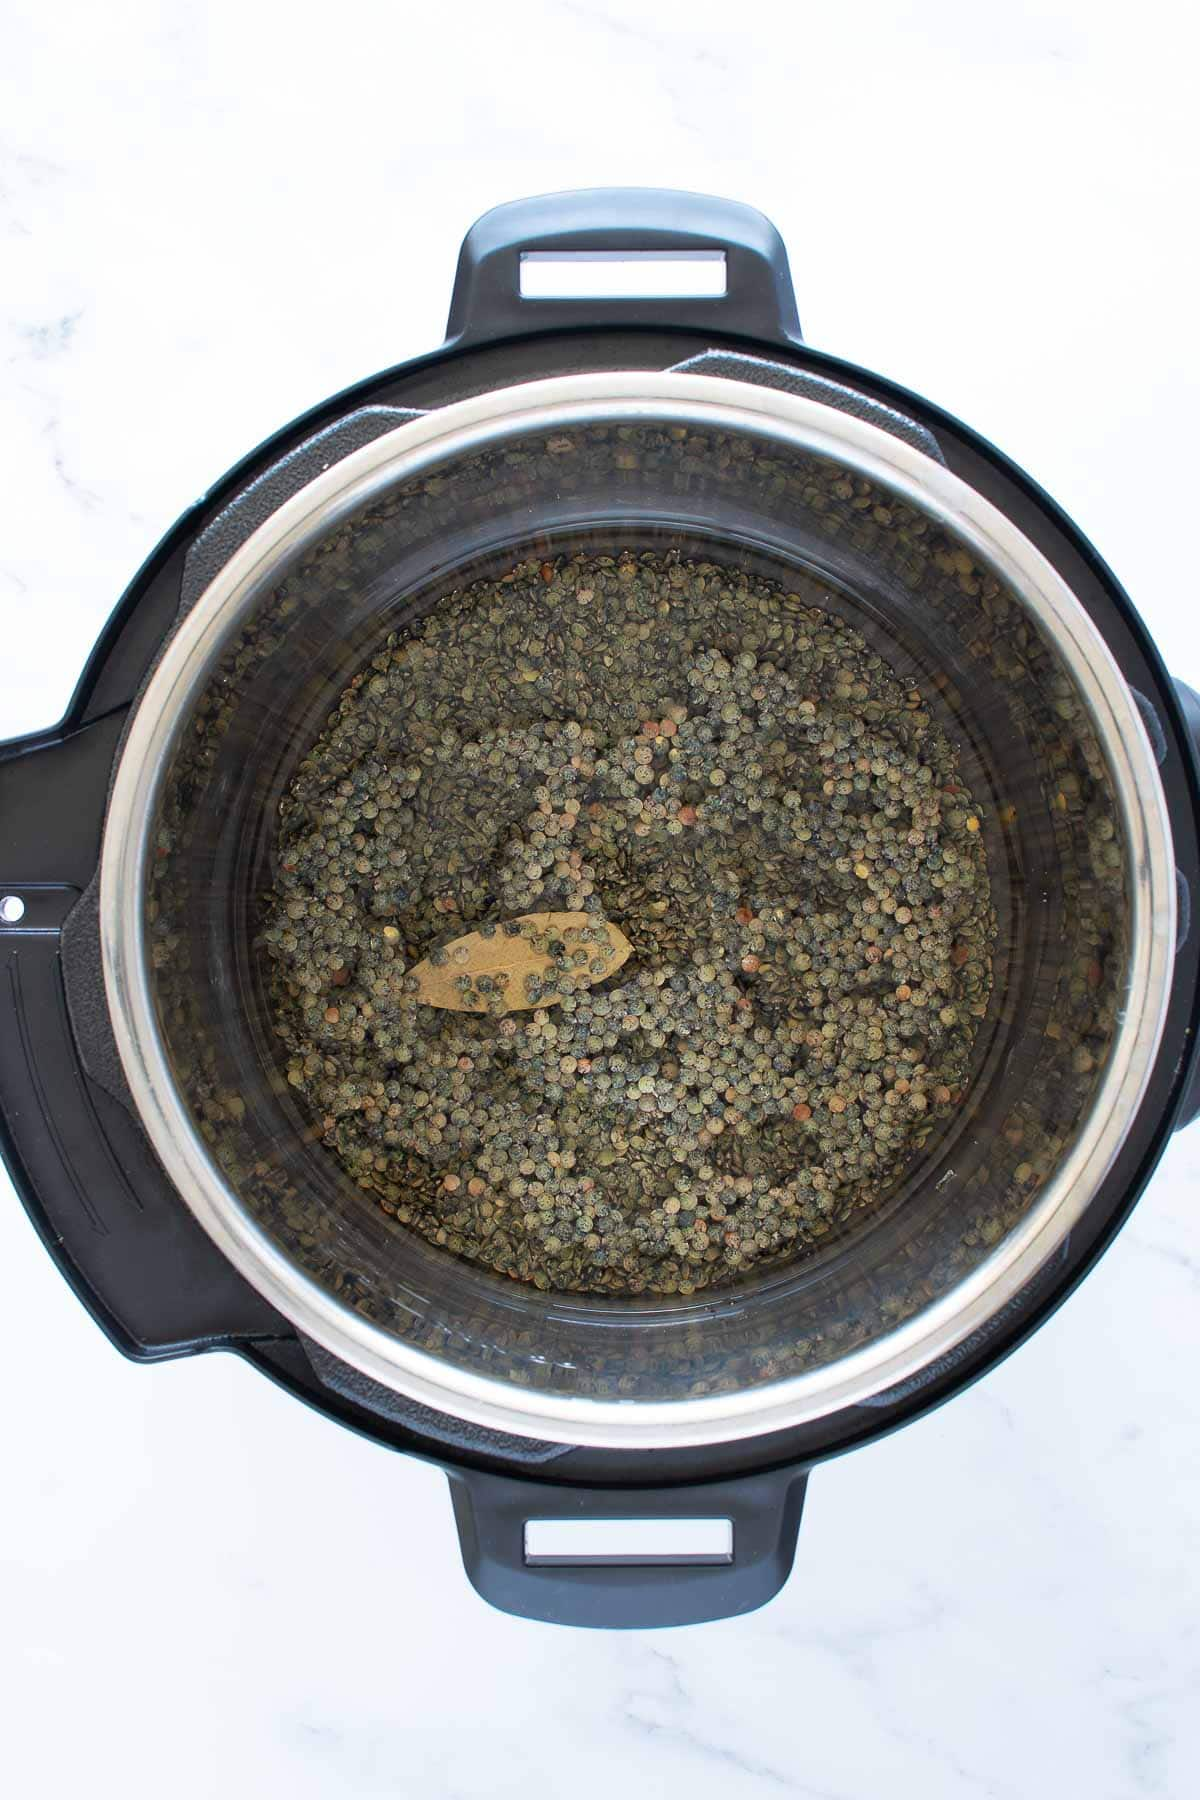 Dry green lentils in a pressure cooker.